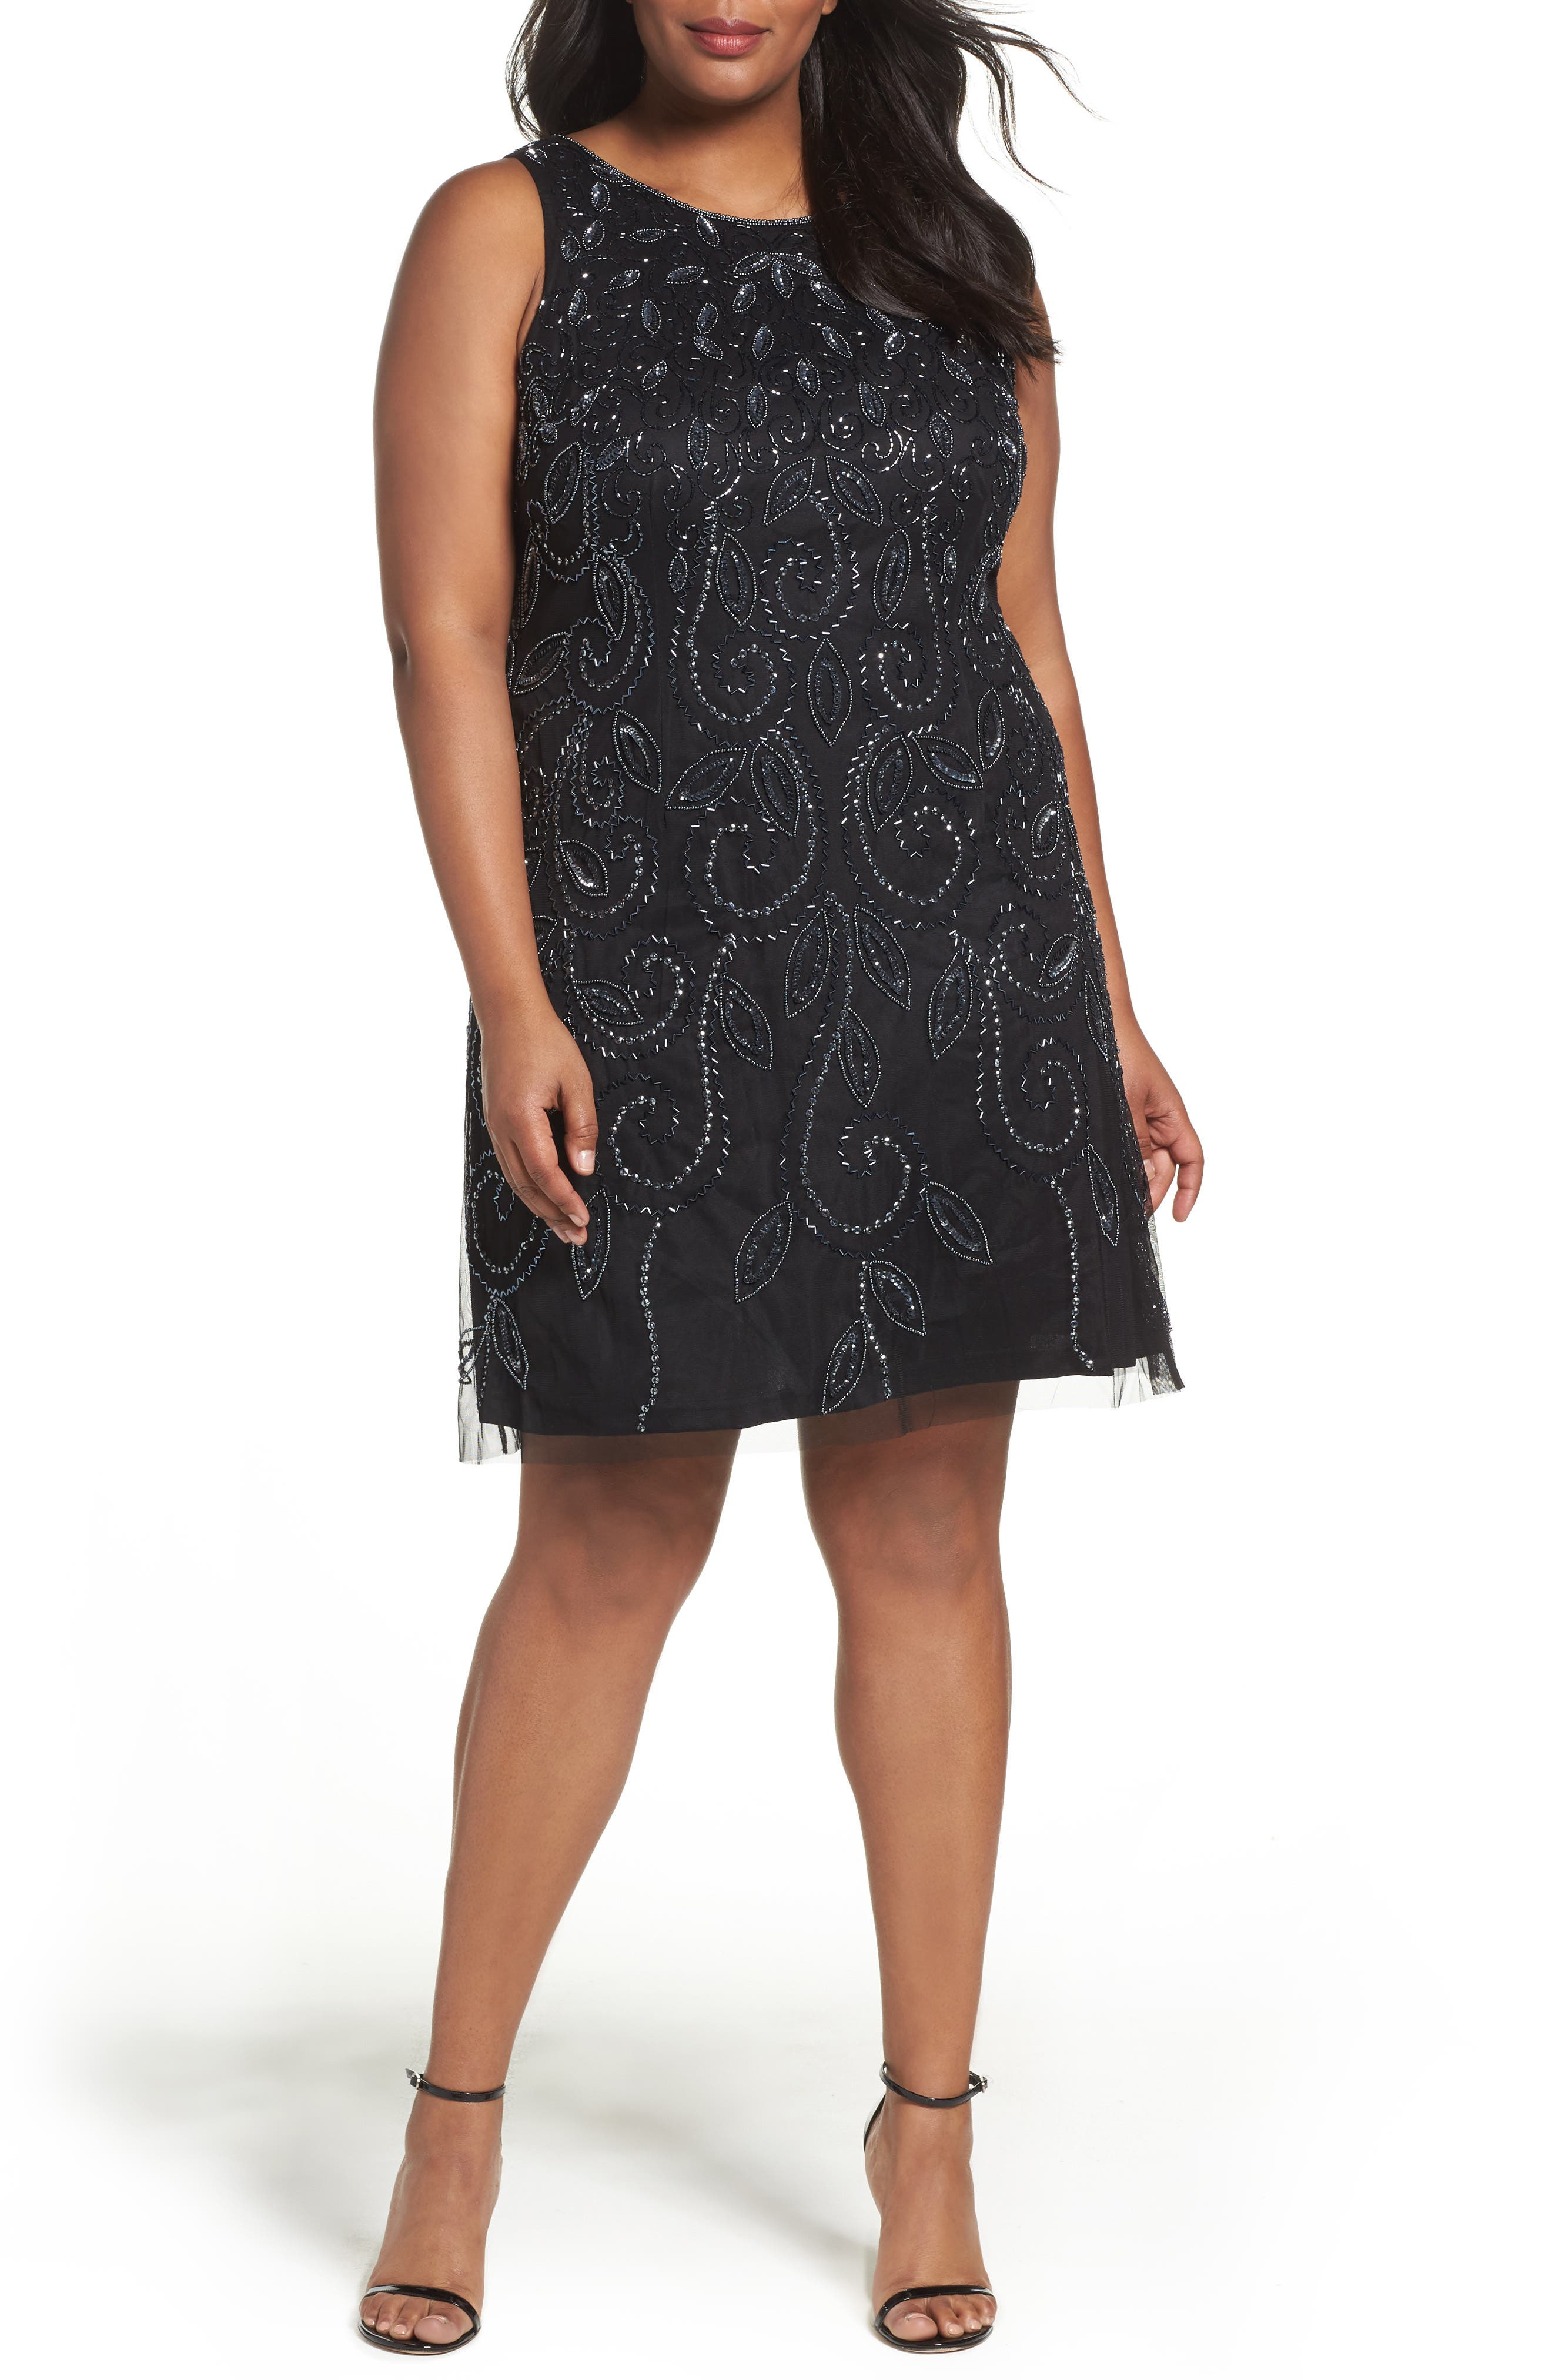 Alternate Image 1 Selected - Adrianna Papell Beaded A-Line Dress (Plus Size)